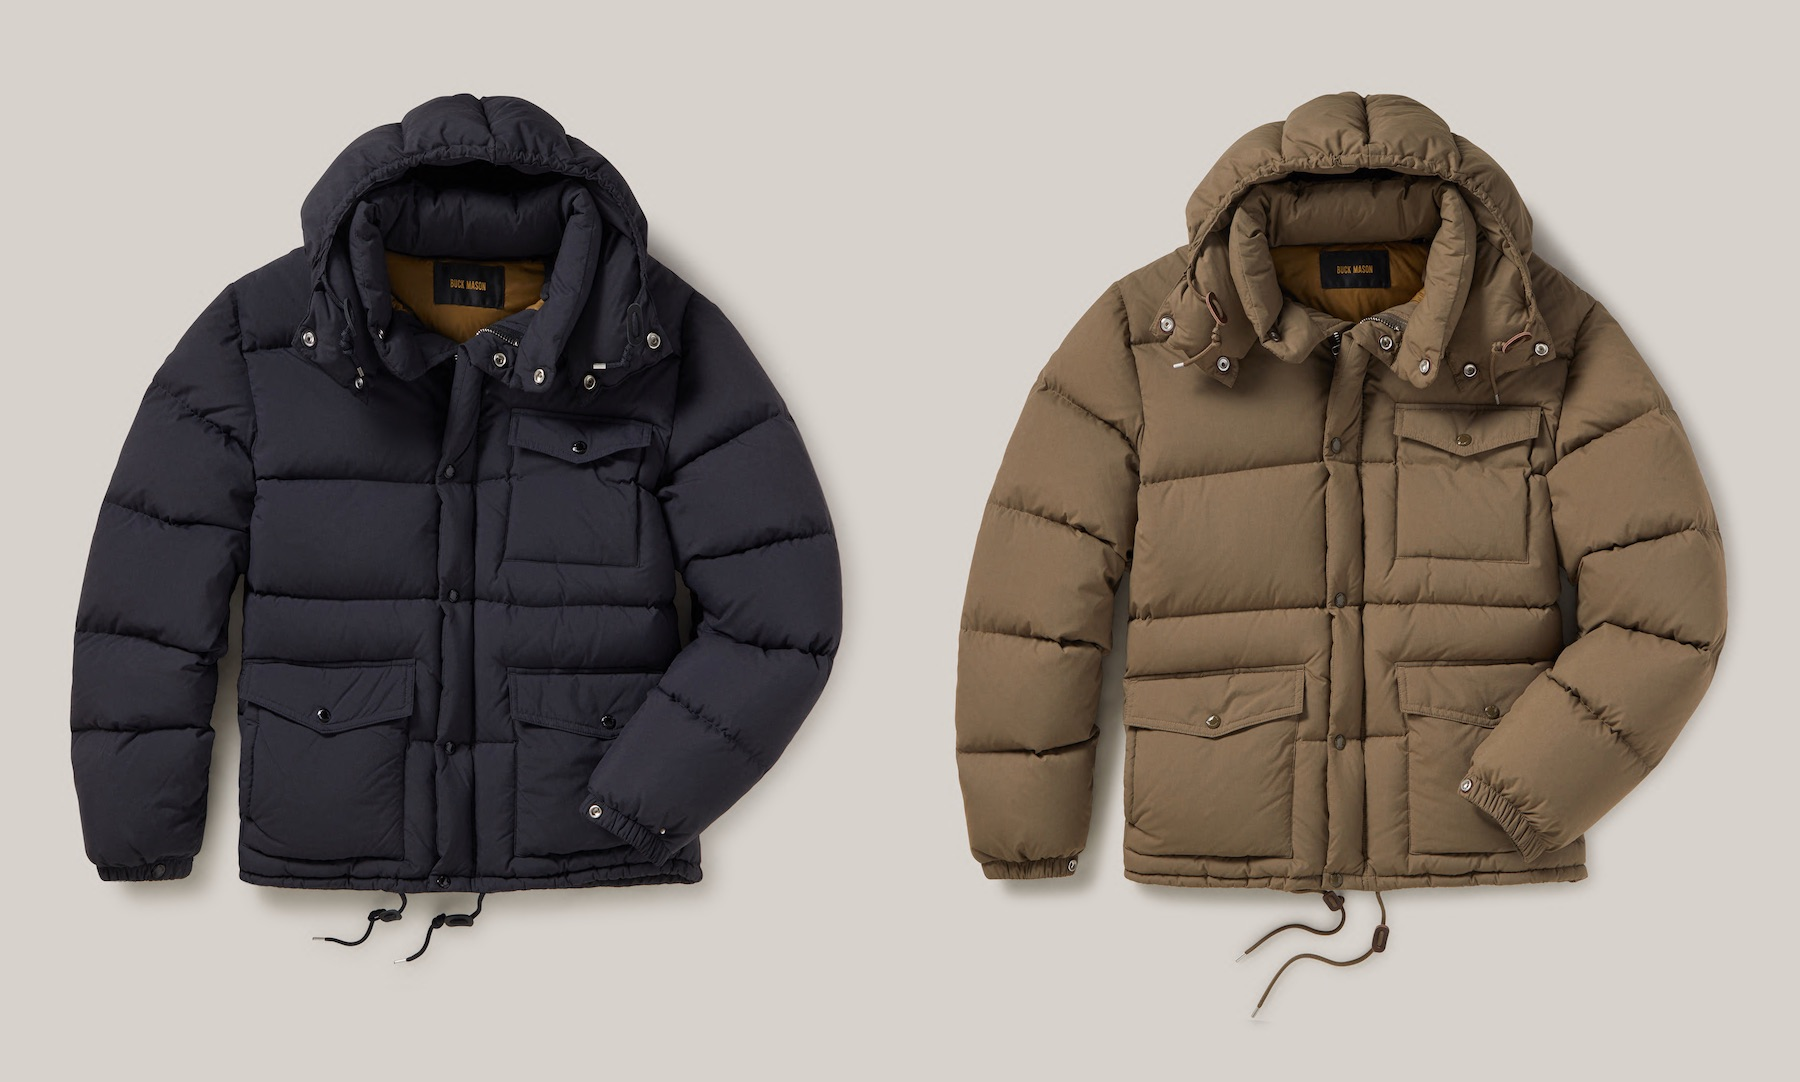 BUCK-MASON-Table-Flat-Lay-Damion-Lloyd-Photography-Commercial-Product-Laydown-Apparel-Clothing-Los-Angeles-Orange-County-puffer-jacket